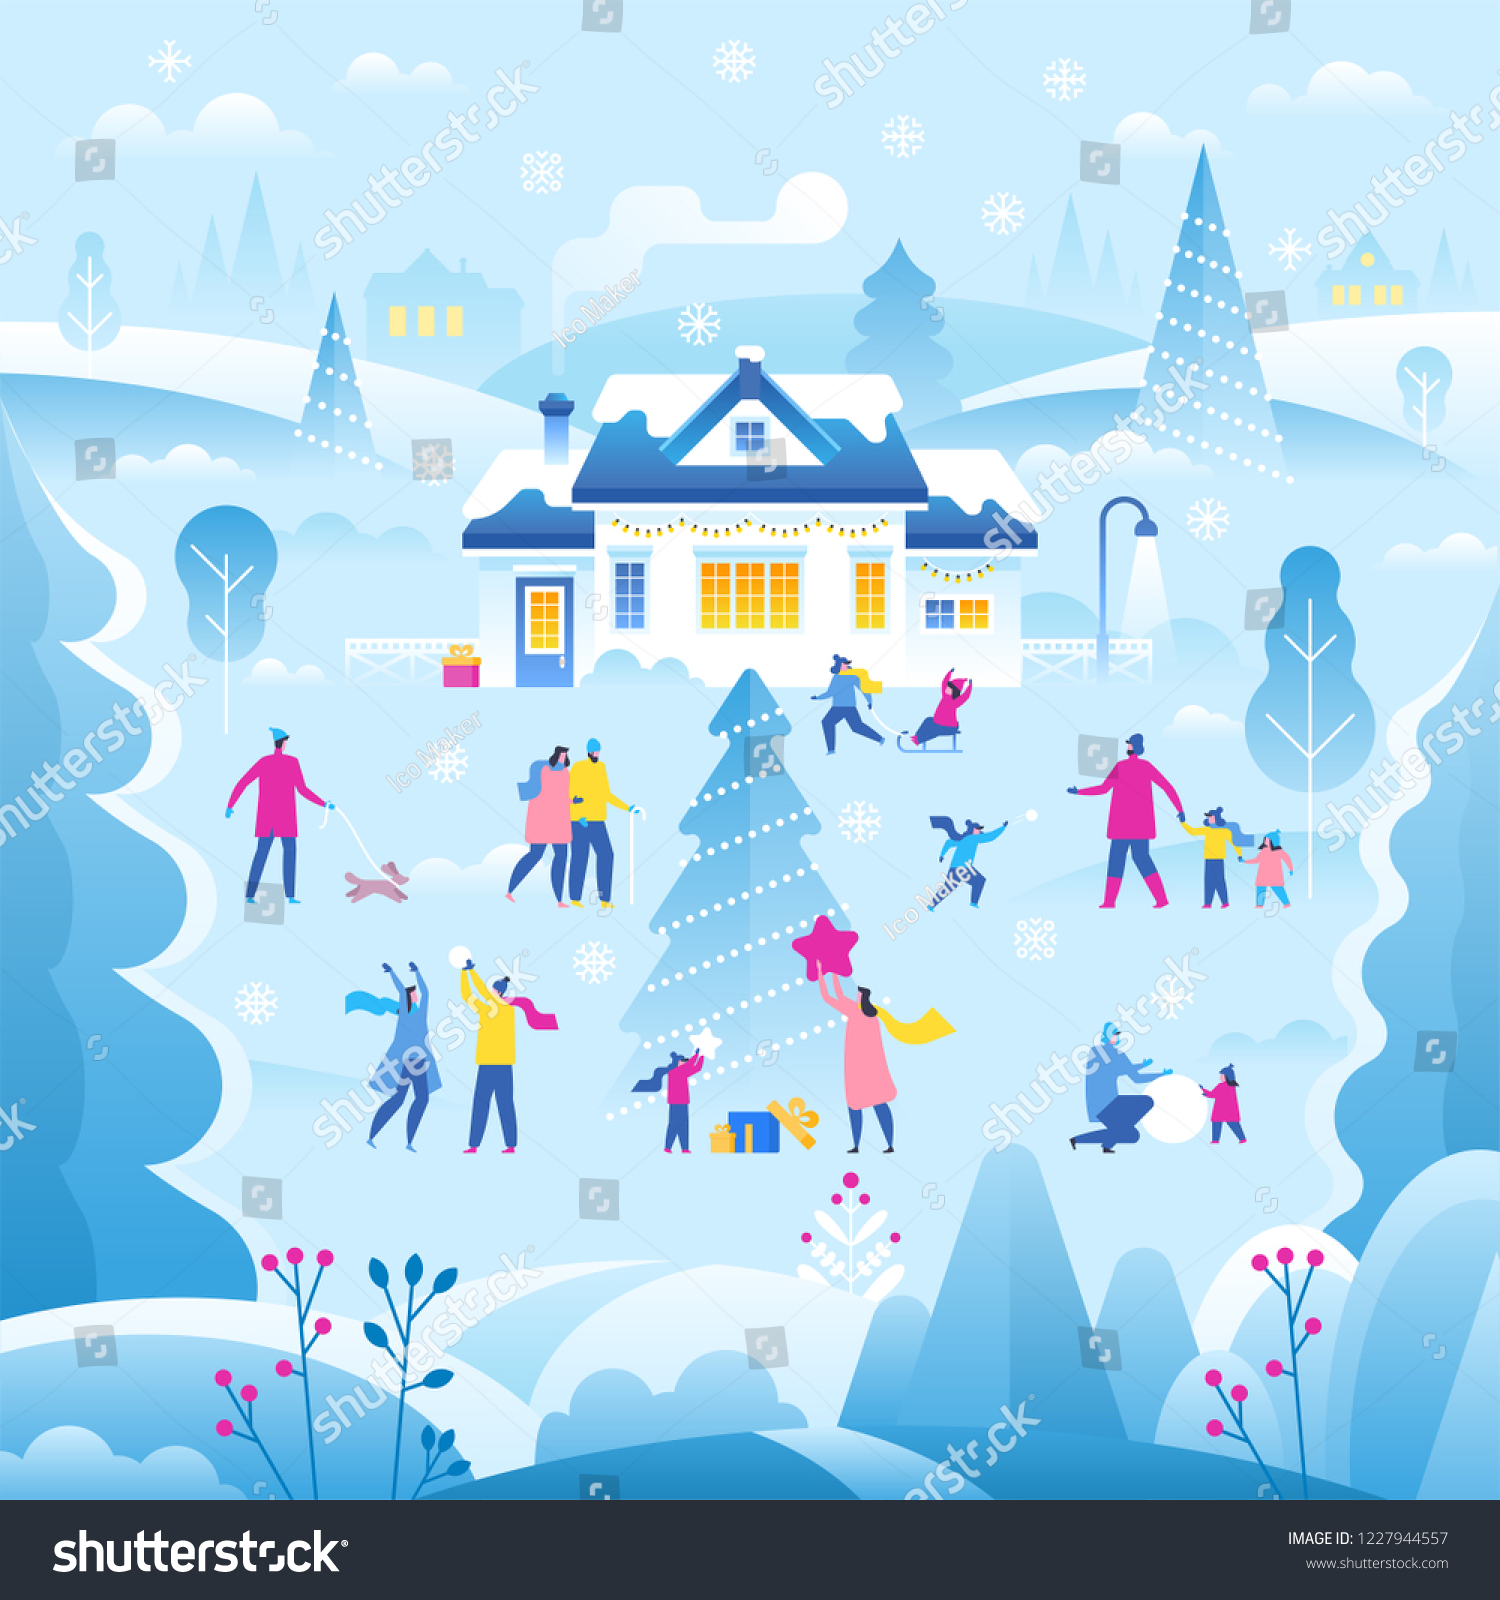 merry christmas and happy new year greeting card and banner winter landscape with house and